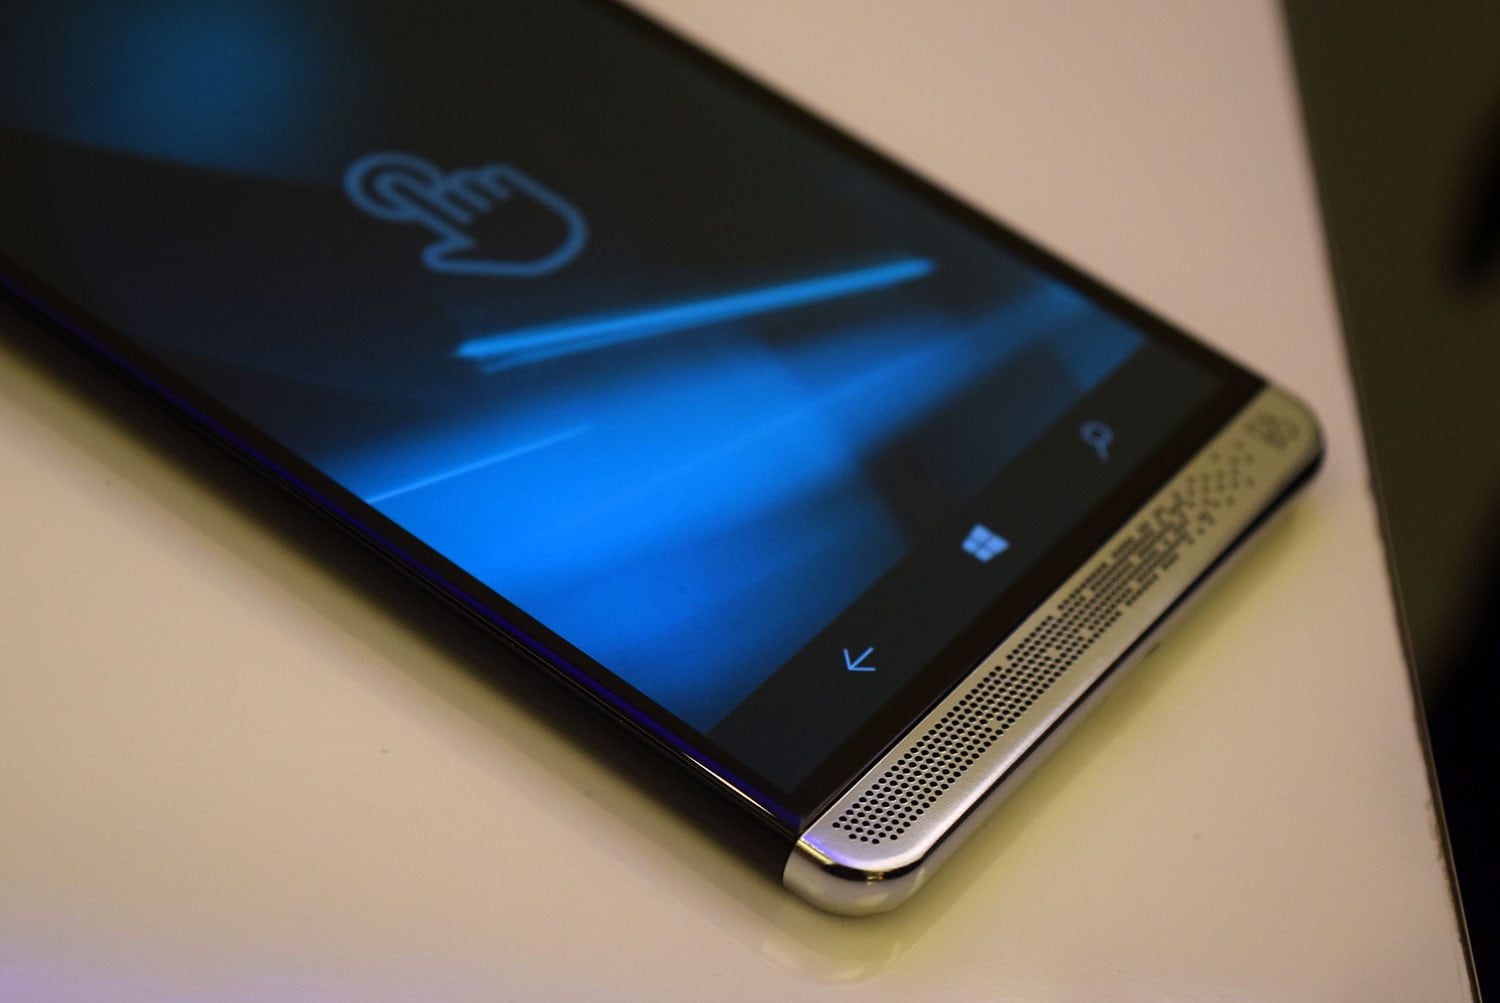 HP Elite X3 Hands-On Review | Windows 10, Specs, and More | Digital Trends